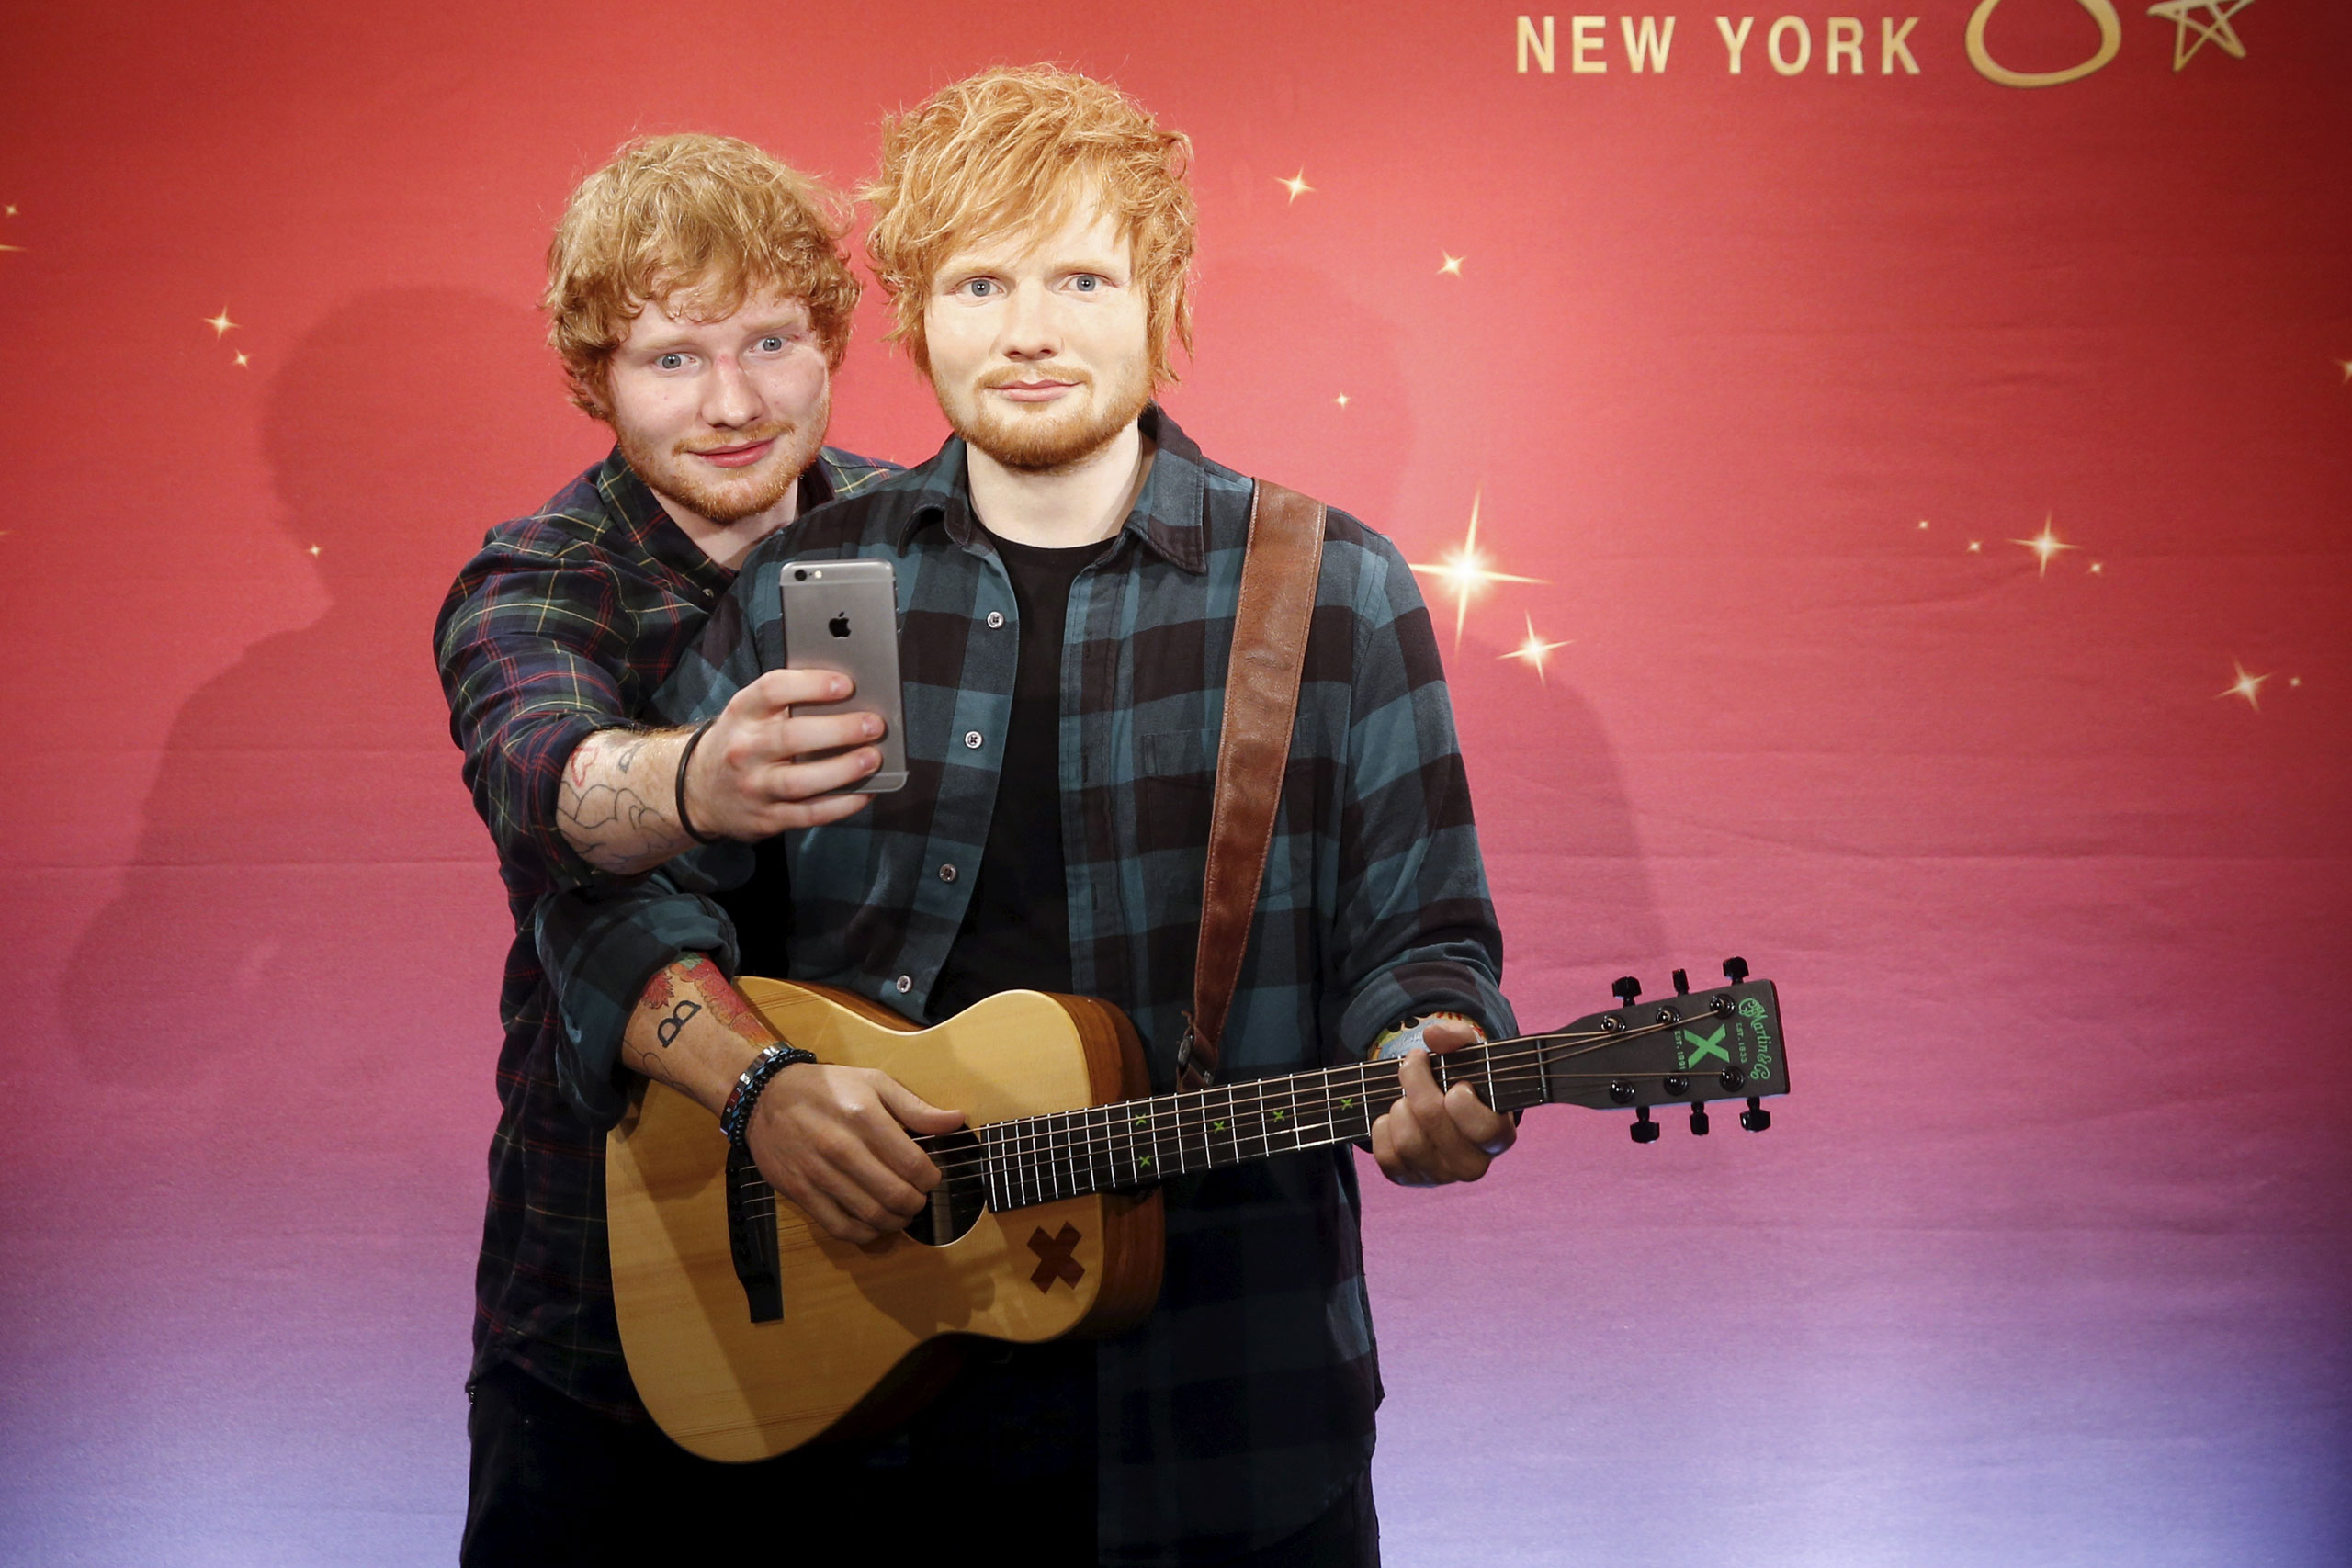 Ed Sheeran, left, takes a selfie with his wax figure at Madame Tussauds in New York on May 28, 2015.